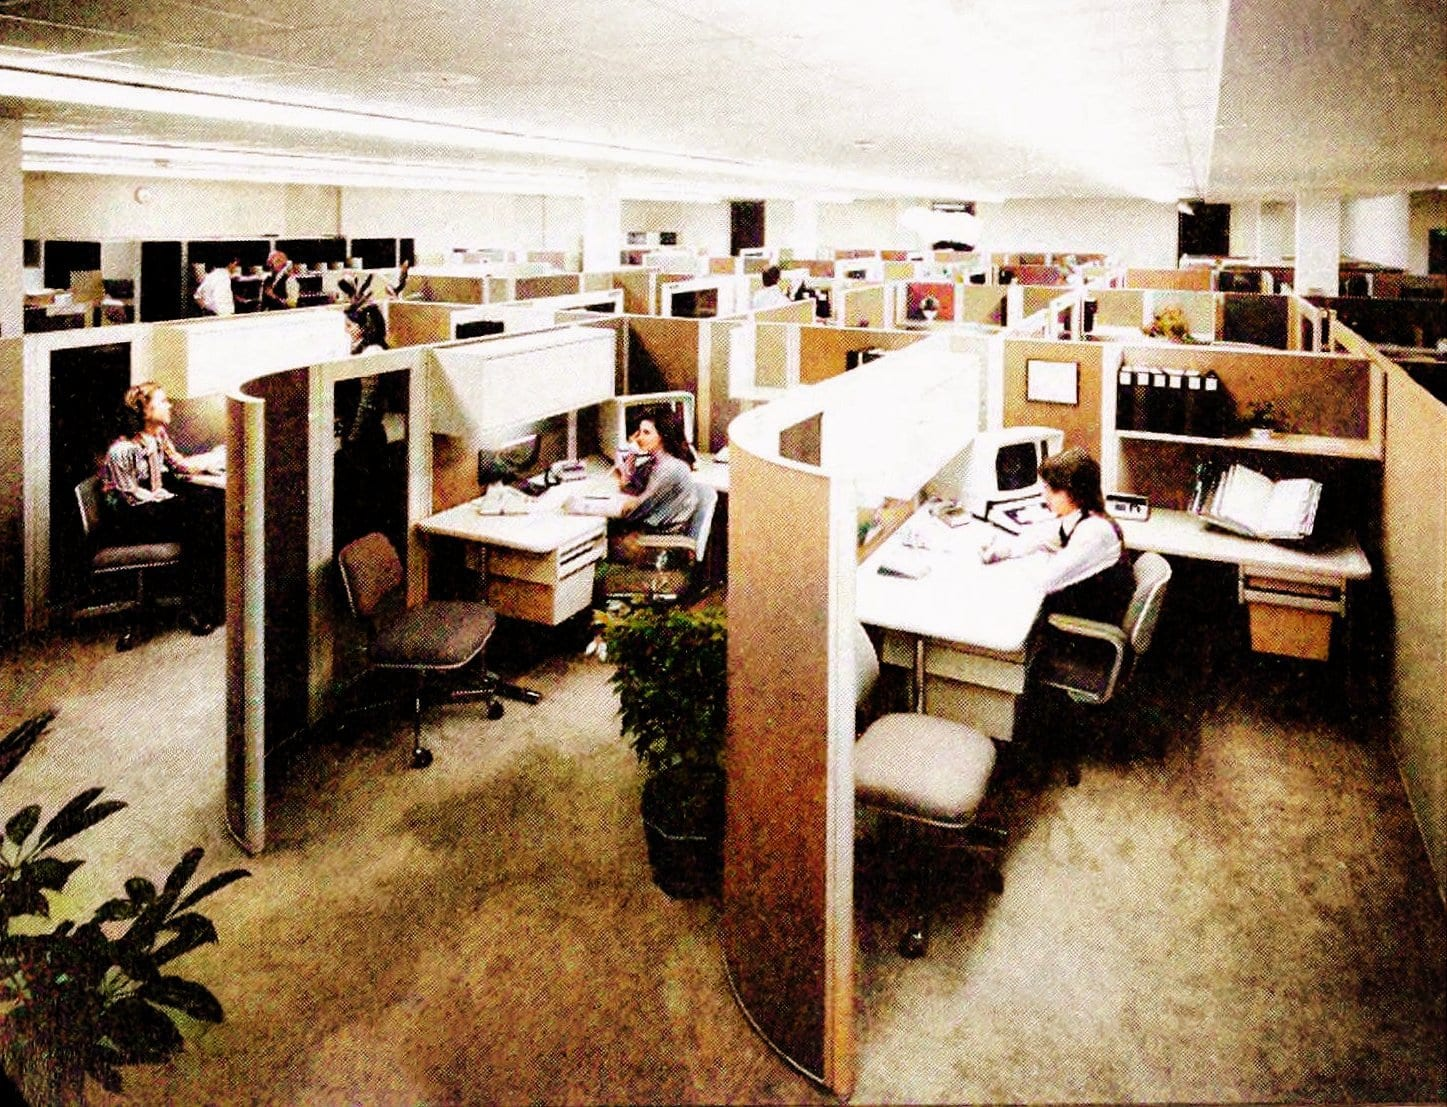 Vintage open plan office arrangements with cubicles - Workplaces from the 1970s (1)